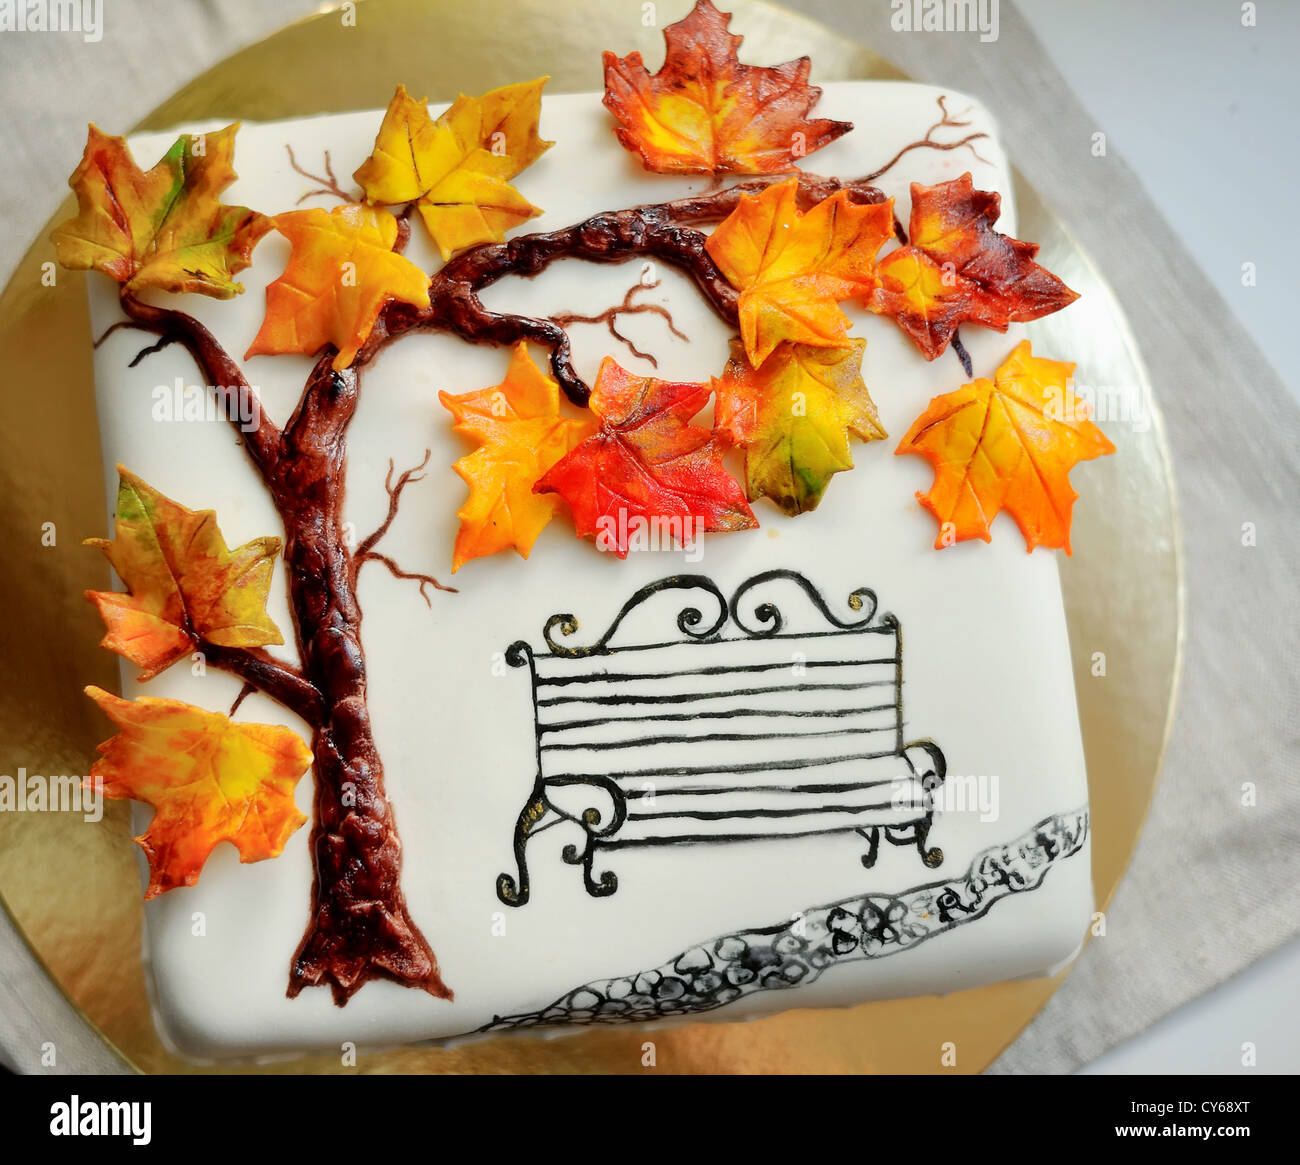 Miraculous Delicious Cake On White Painted Branch With Autumn Leaves And A Funny Birthday Cards Online Aboleapandamsfinfo